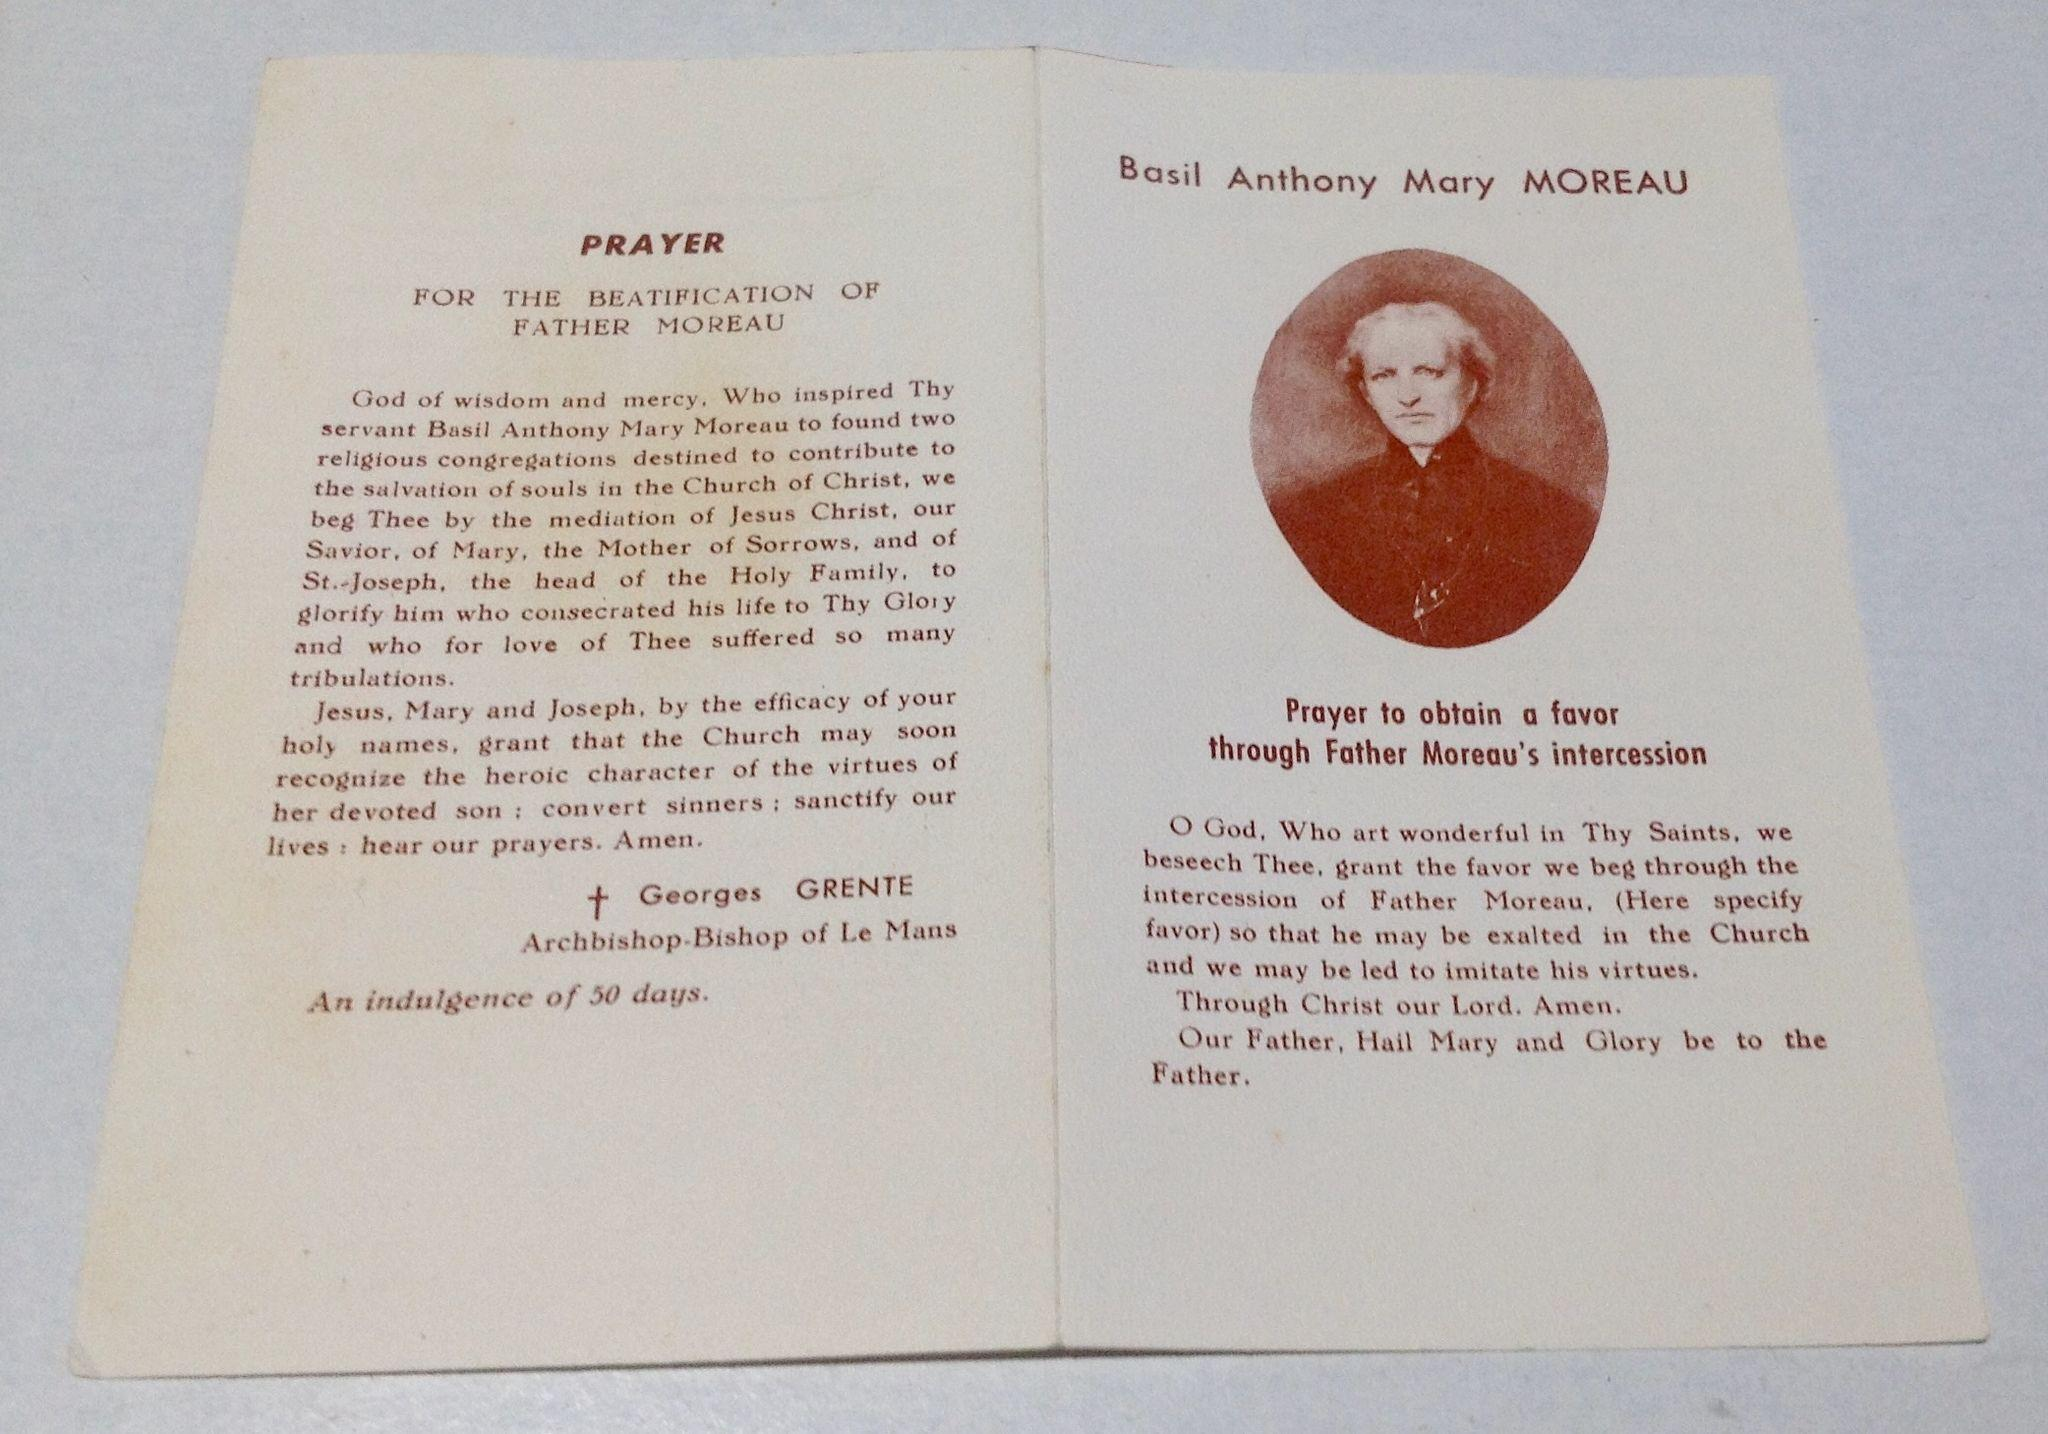 Top 9 Quotes By Basil Moreau: Vintage Basil Anthony Mary Moreau Pray Card With Reliquary